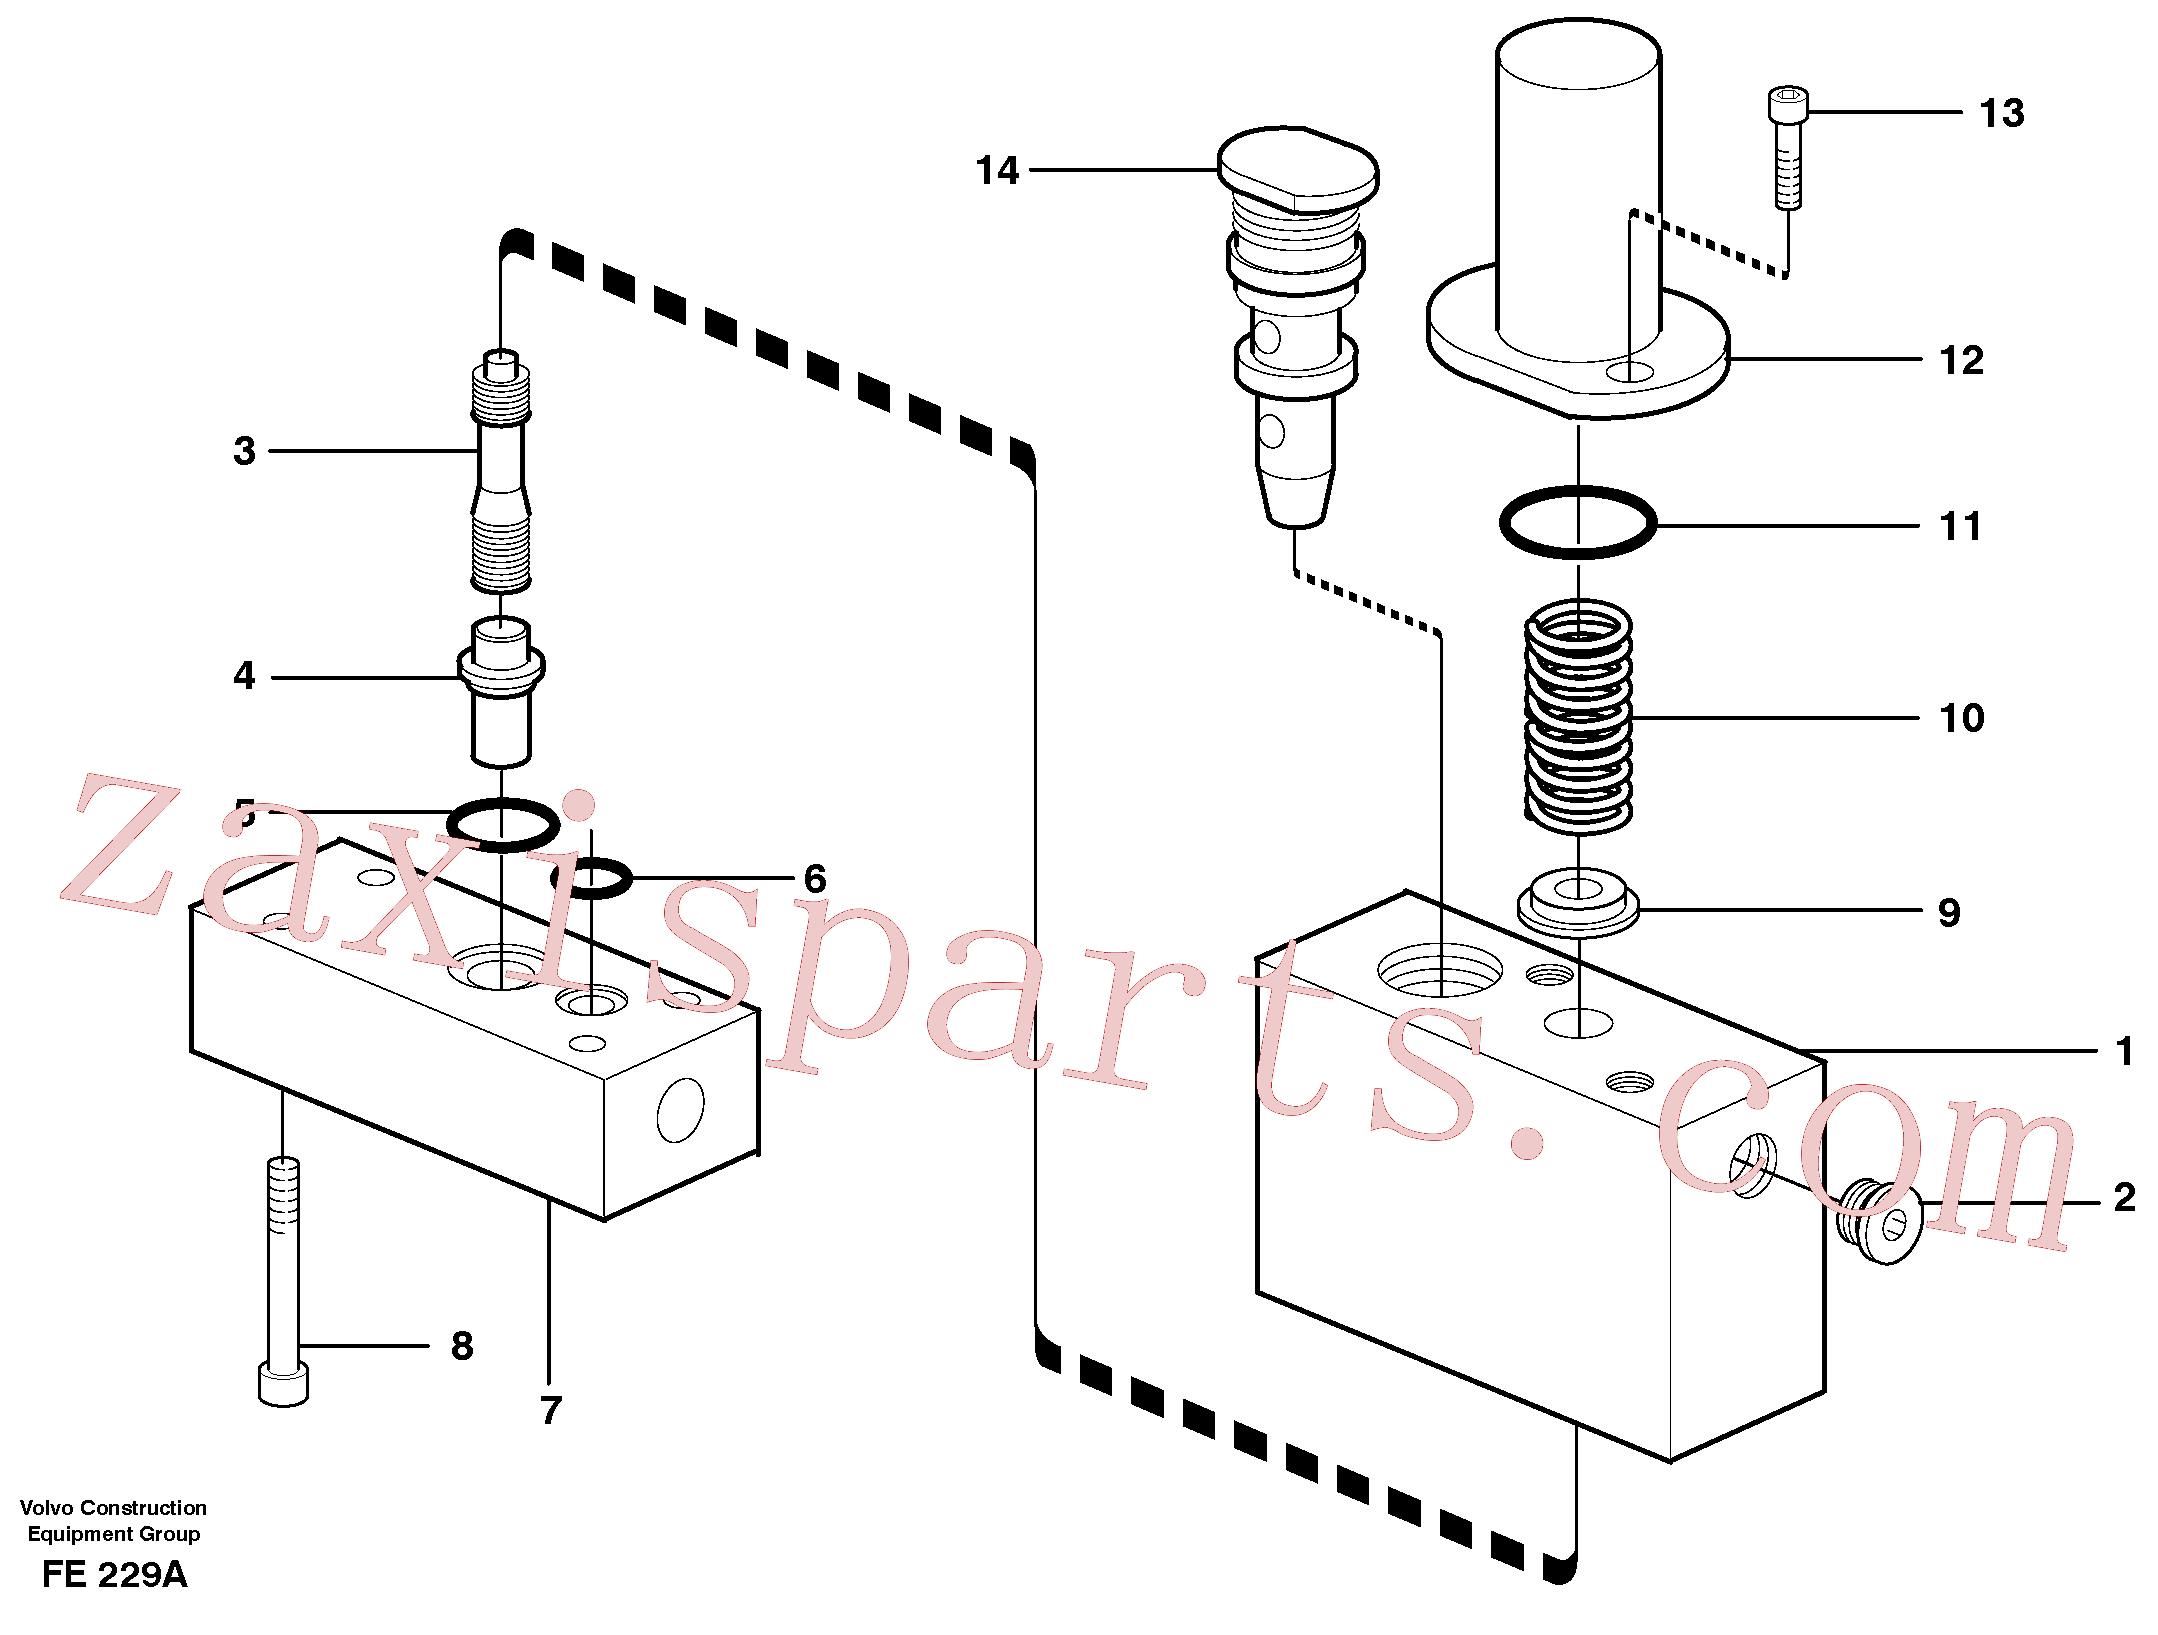 VOE14054984 for Volvo Thermostatic valve(FE229A assembly)